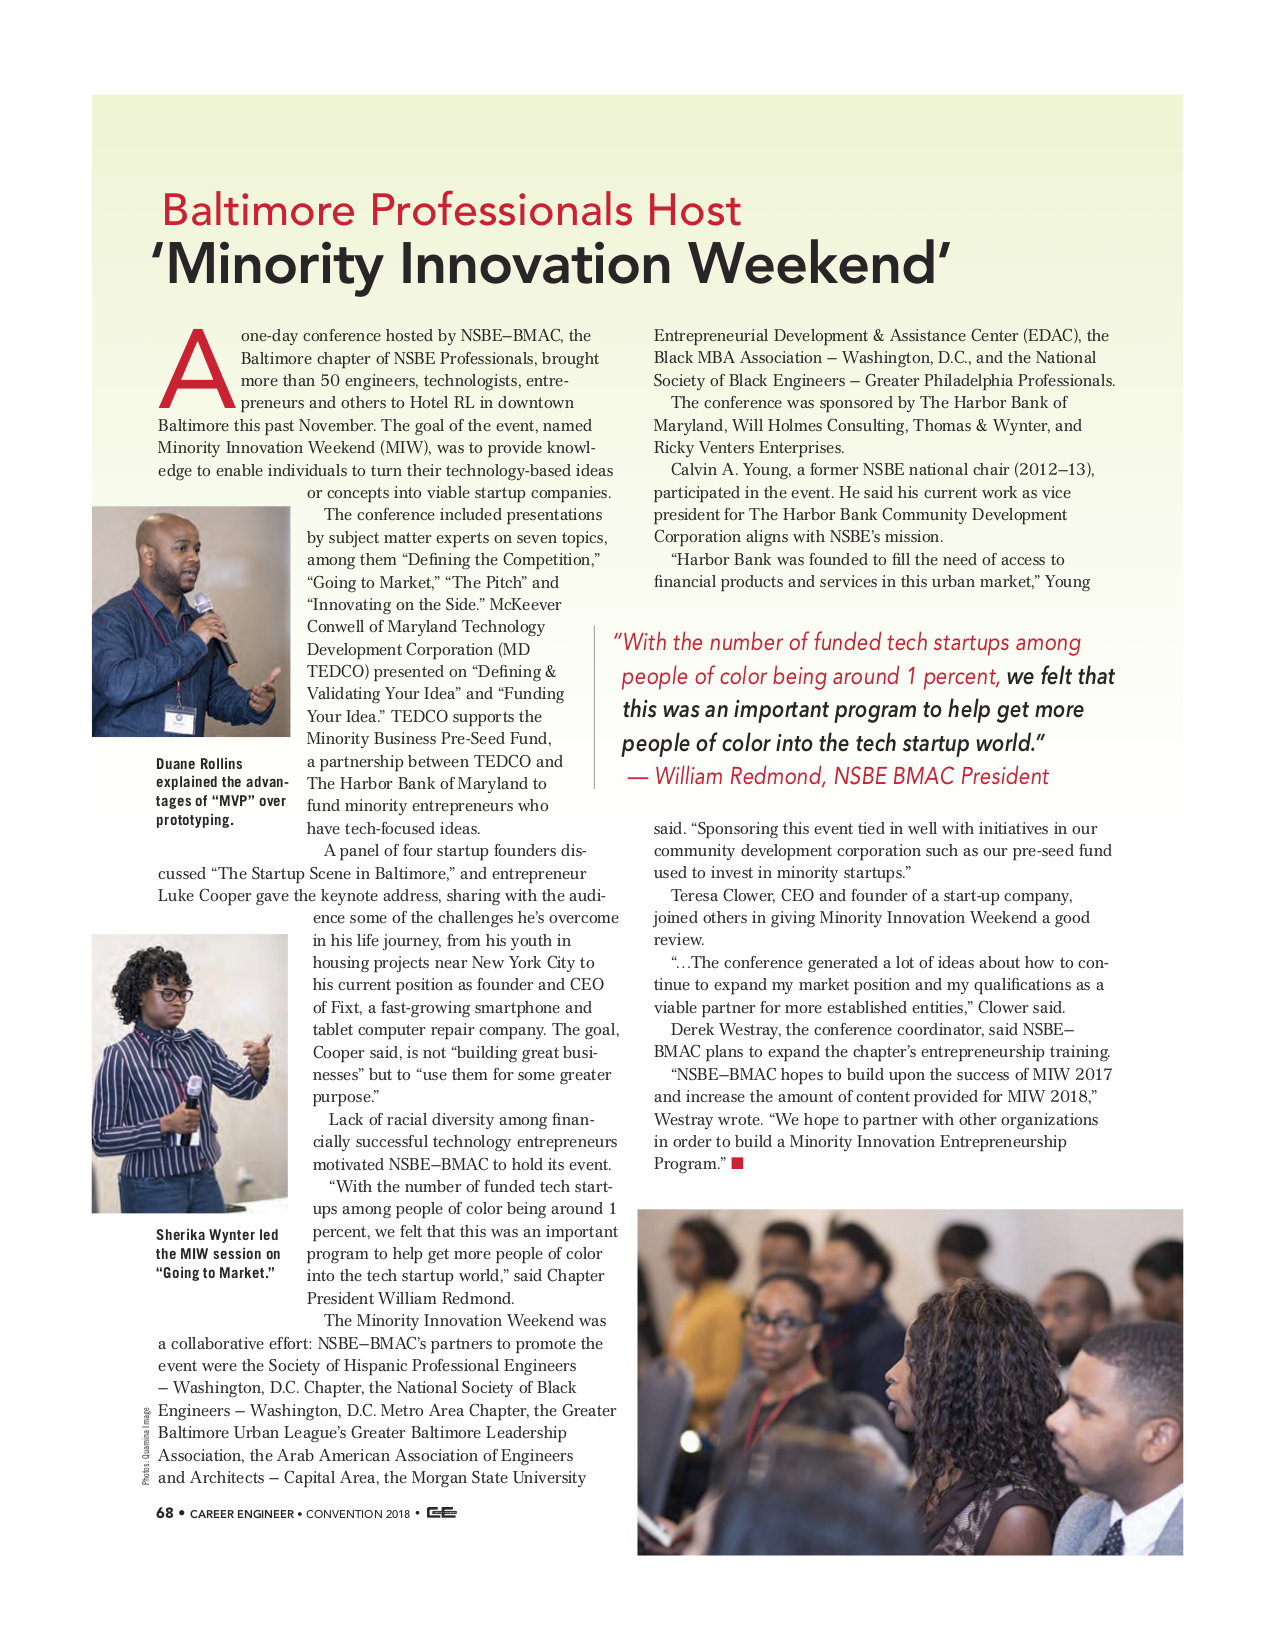 Baltimore Professionals Host Minority Innovation Weekend